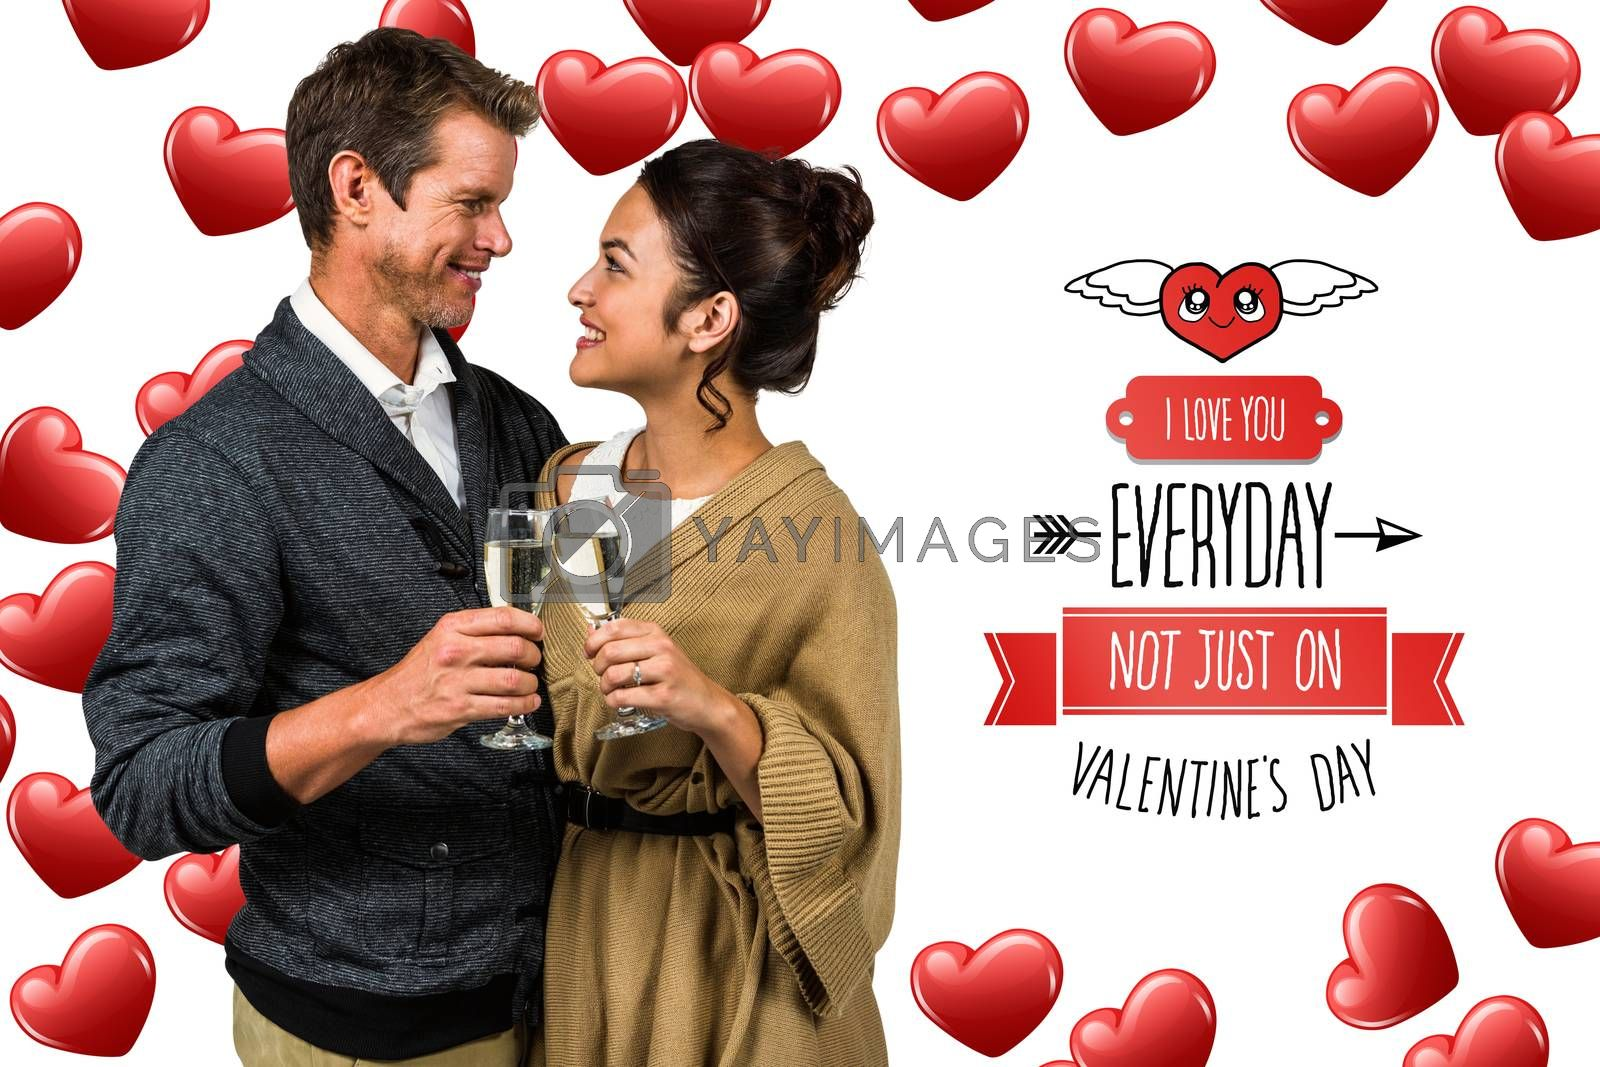 Composite image of happy romantic couple with champagne flute by Wavebreakmedia